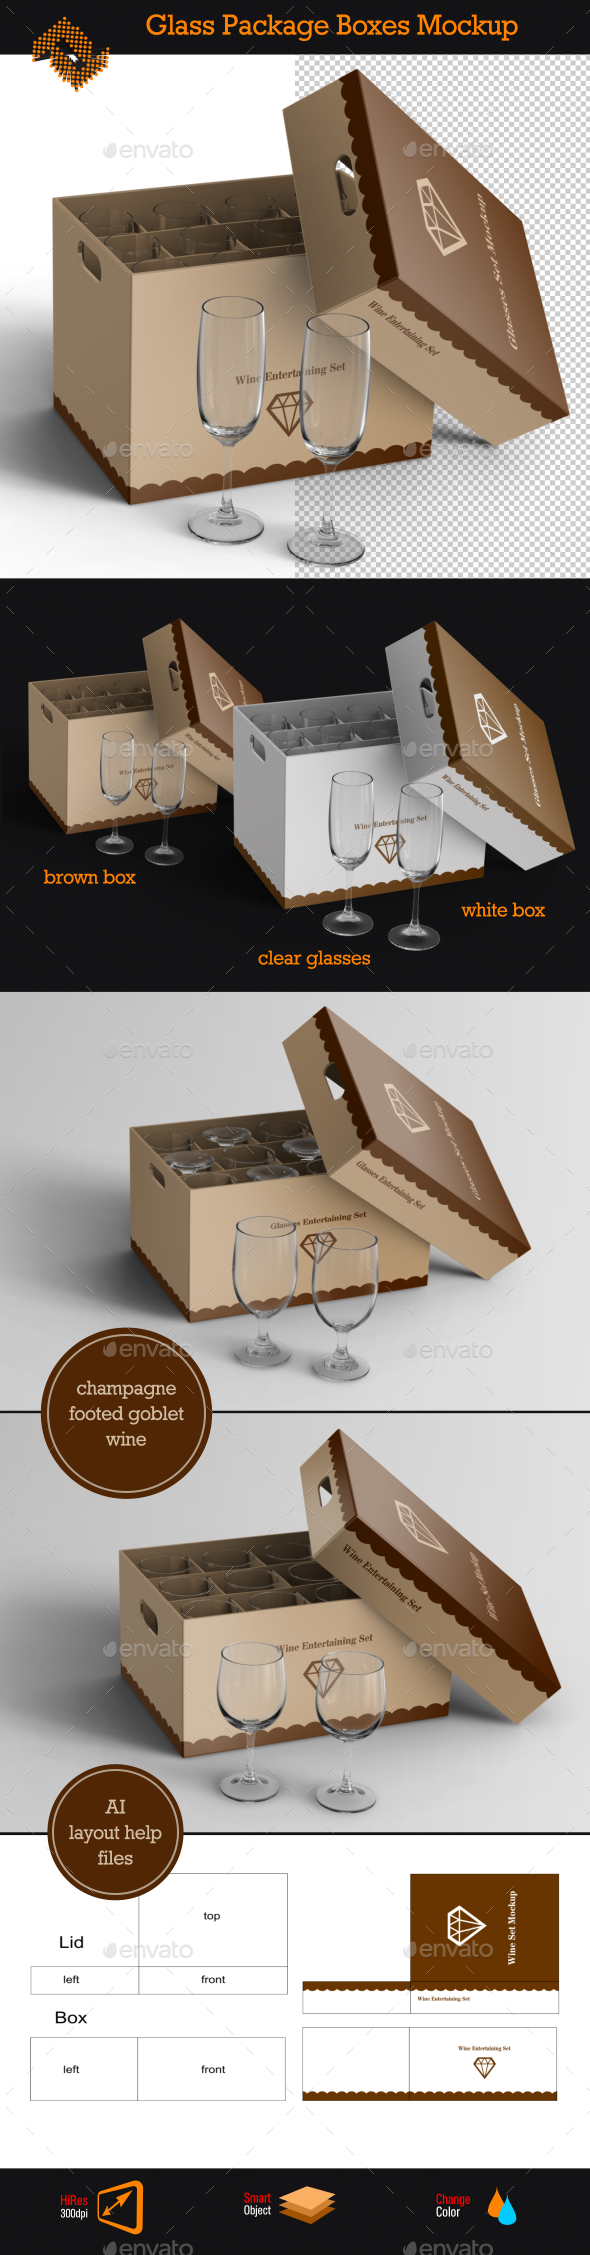 Glass Package Boxes Mockup - Packaging Product Mock-Ups